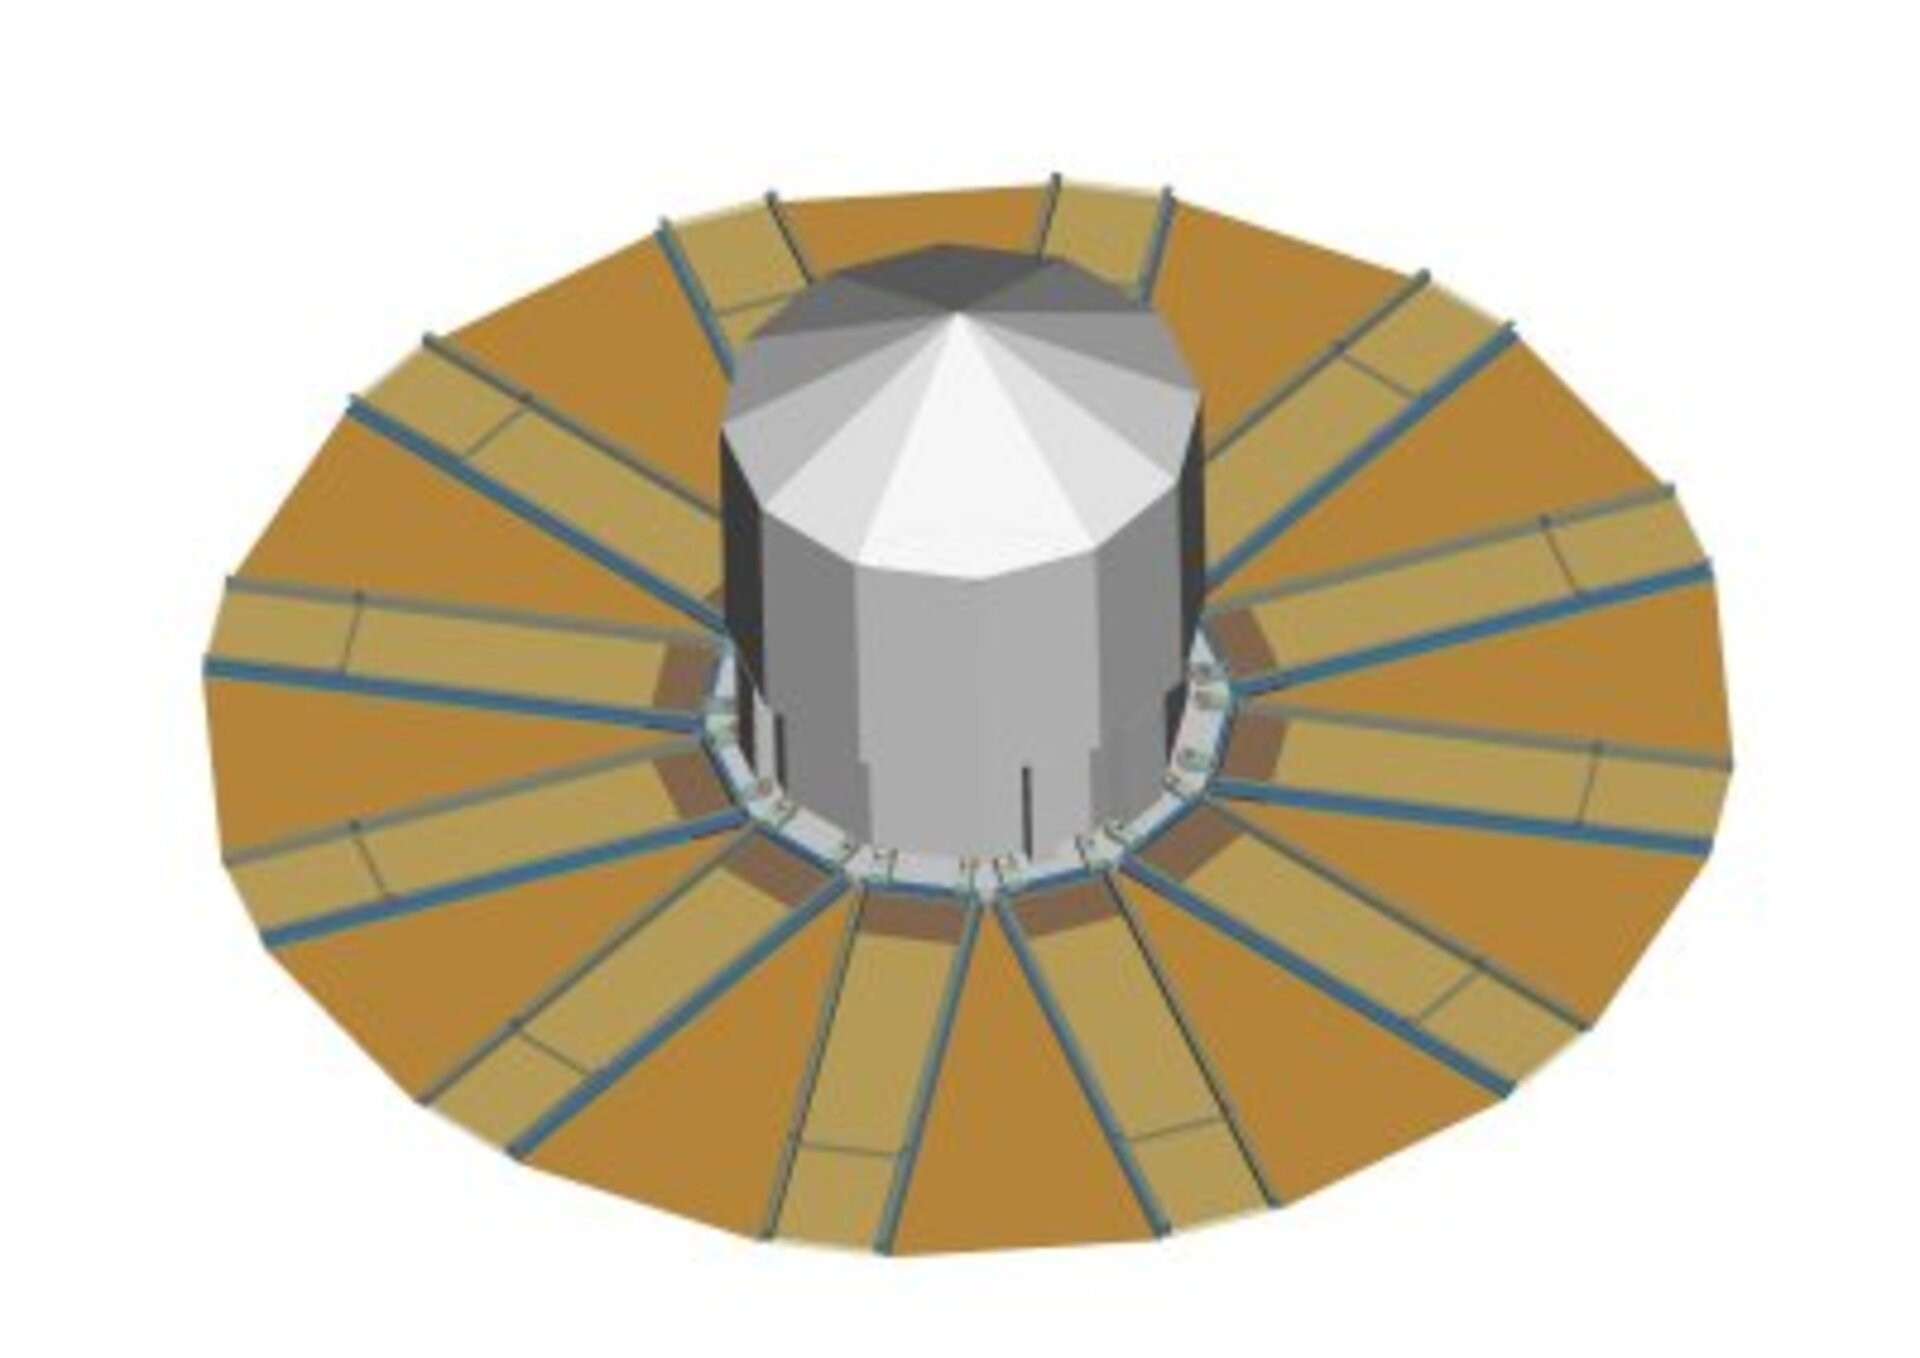 Artist's impression of Gaia's sunshield (deployed)